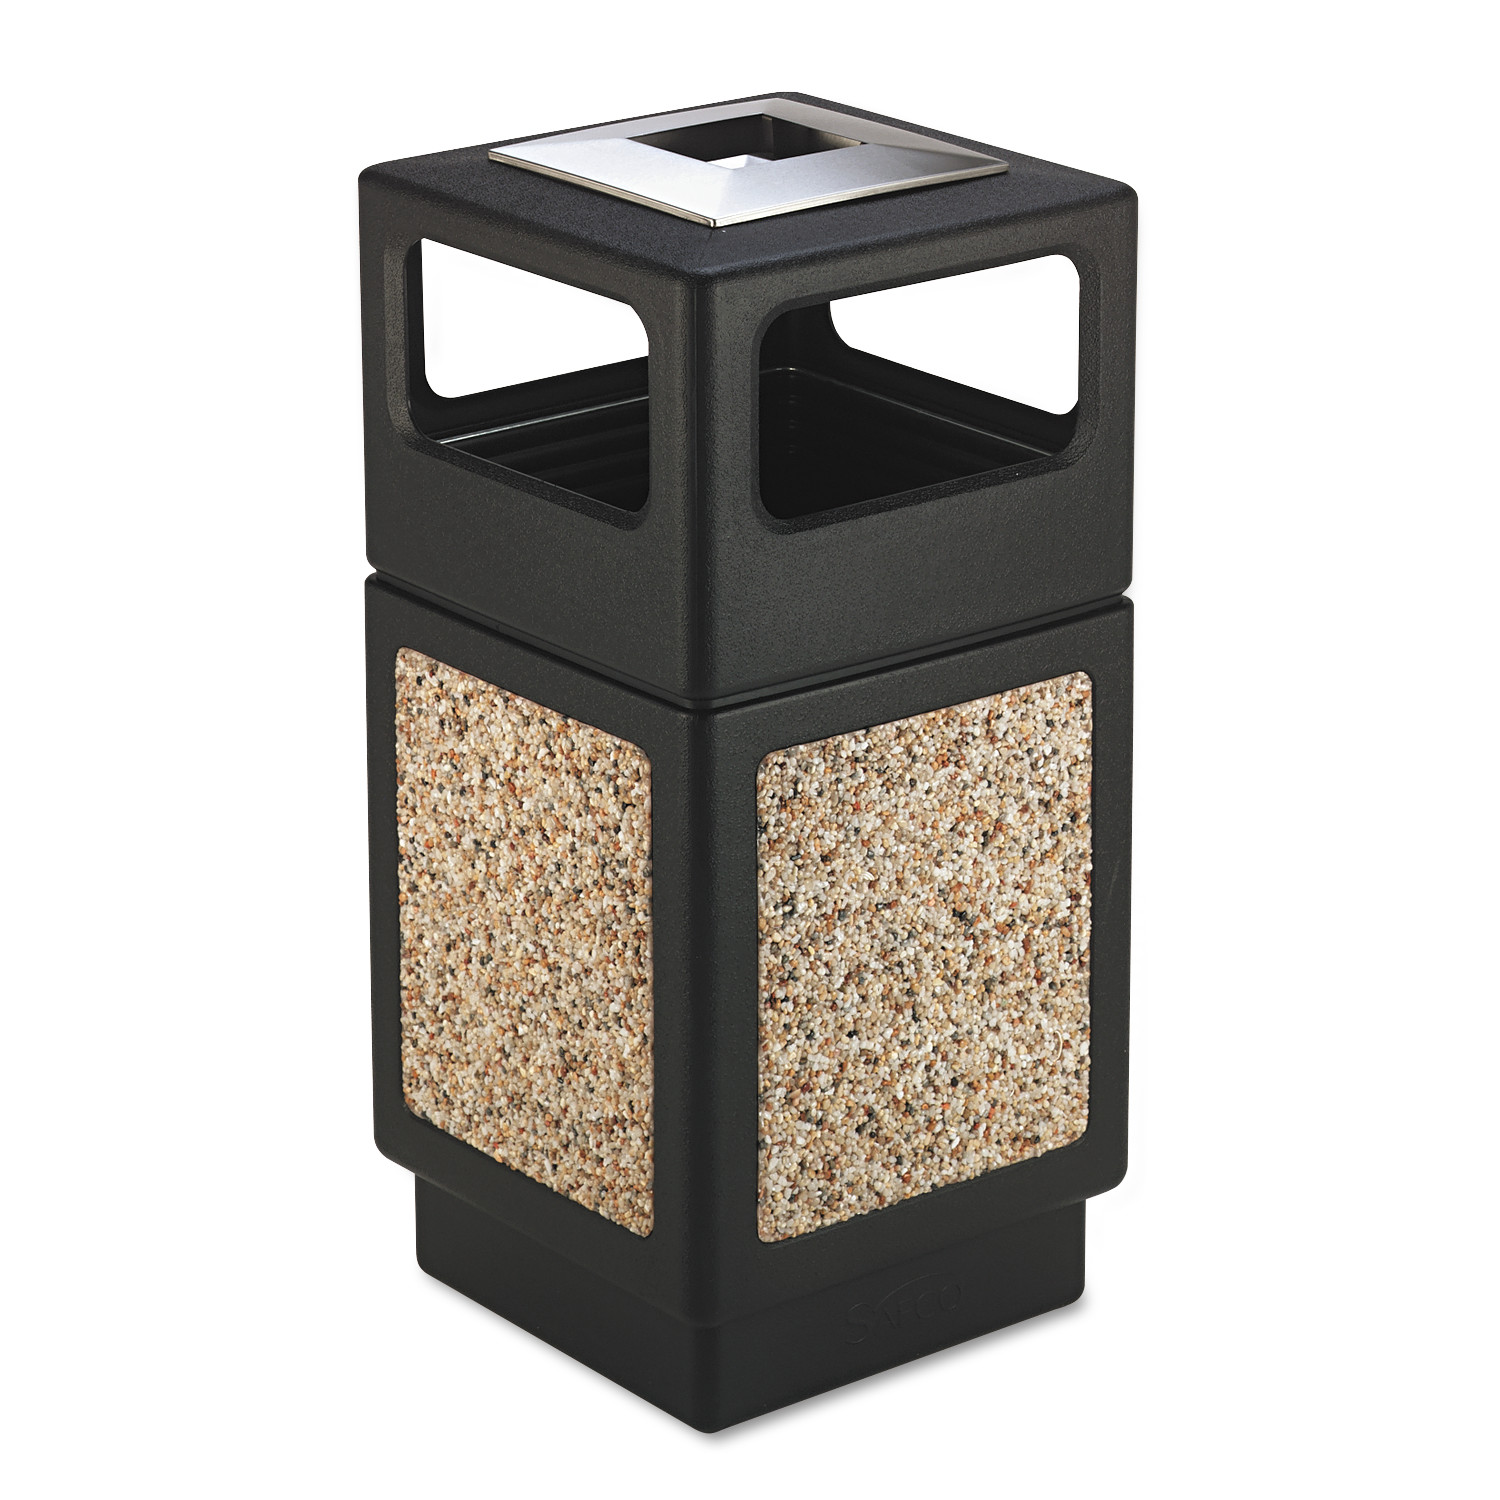 Safco Canmeleon Ash/Trash Receptacle, Square, Aggregate/Polyethylene, 38gal, Black